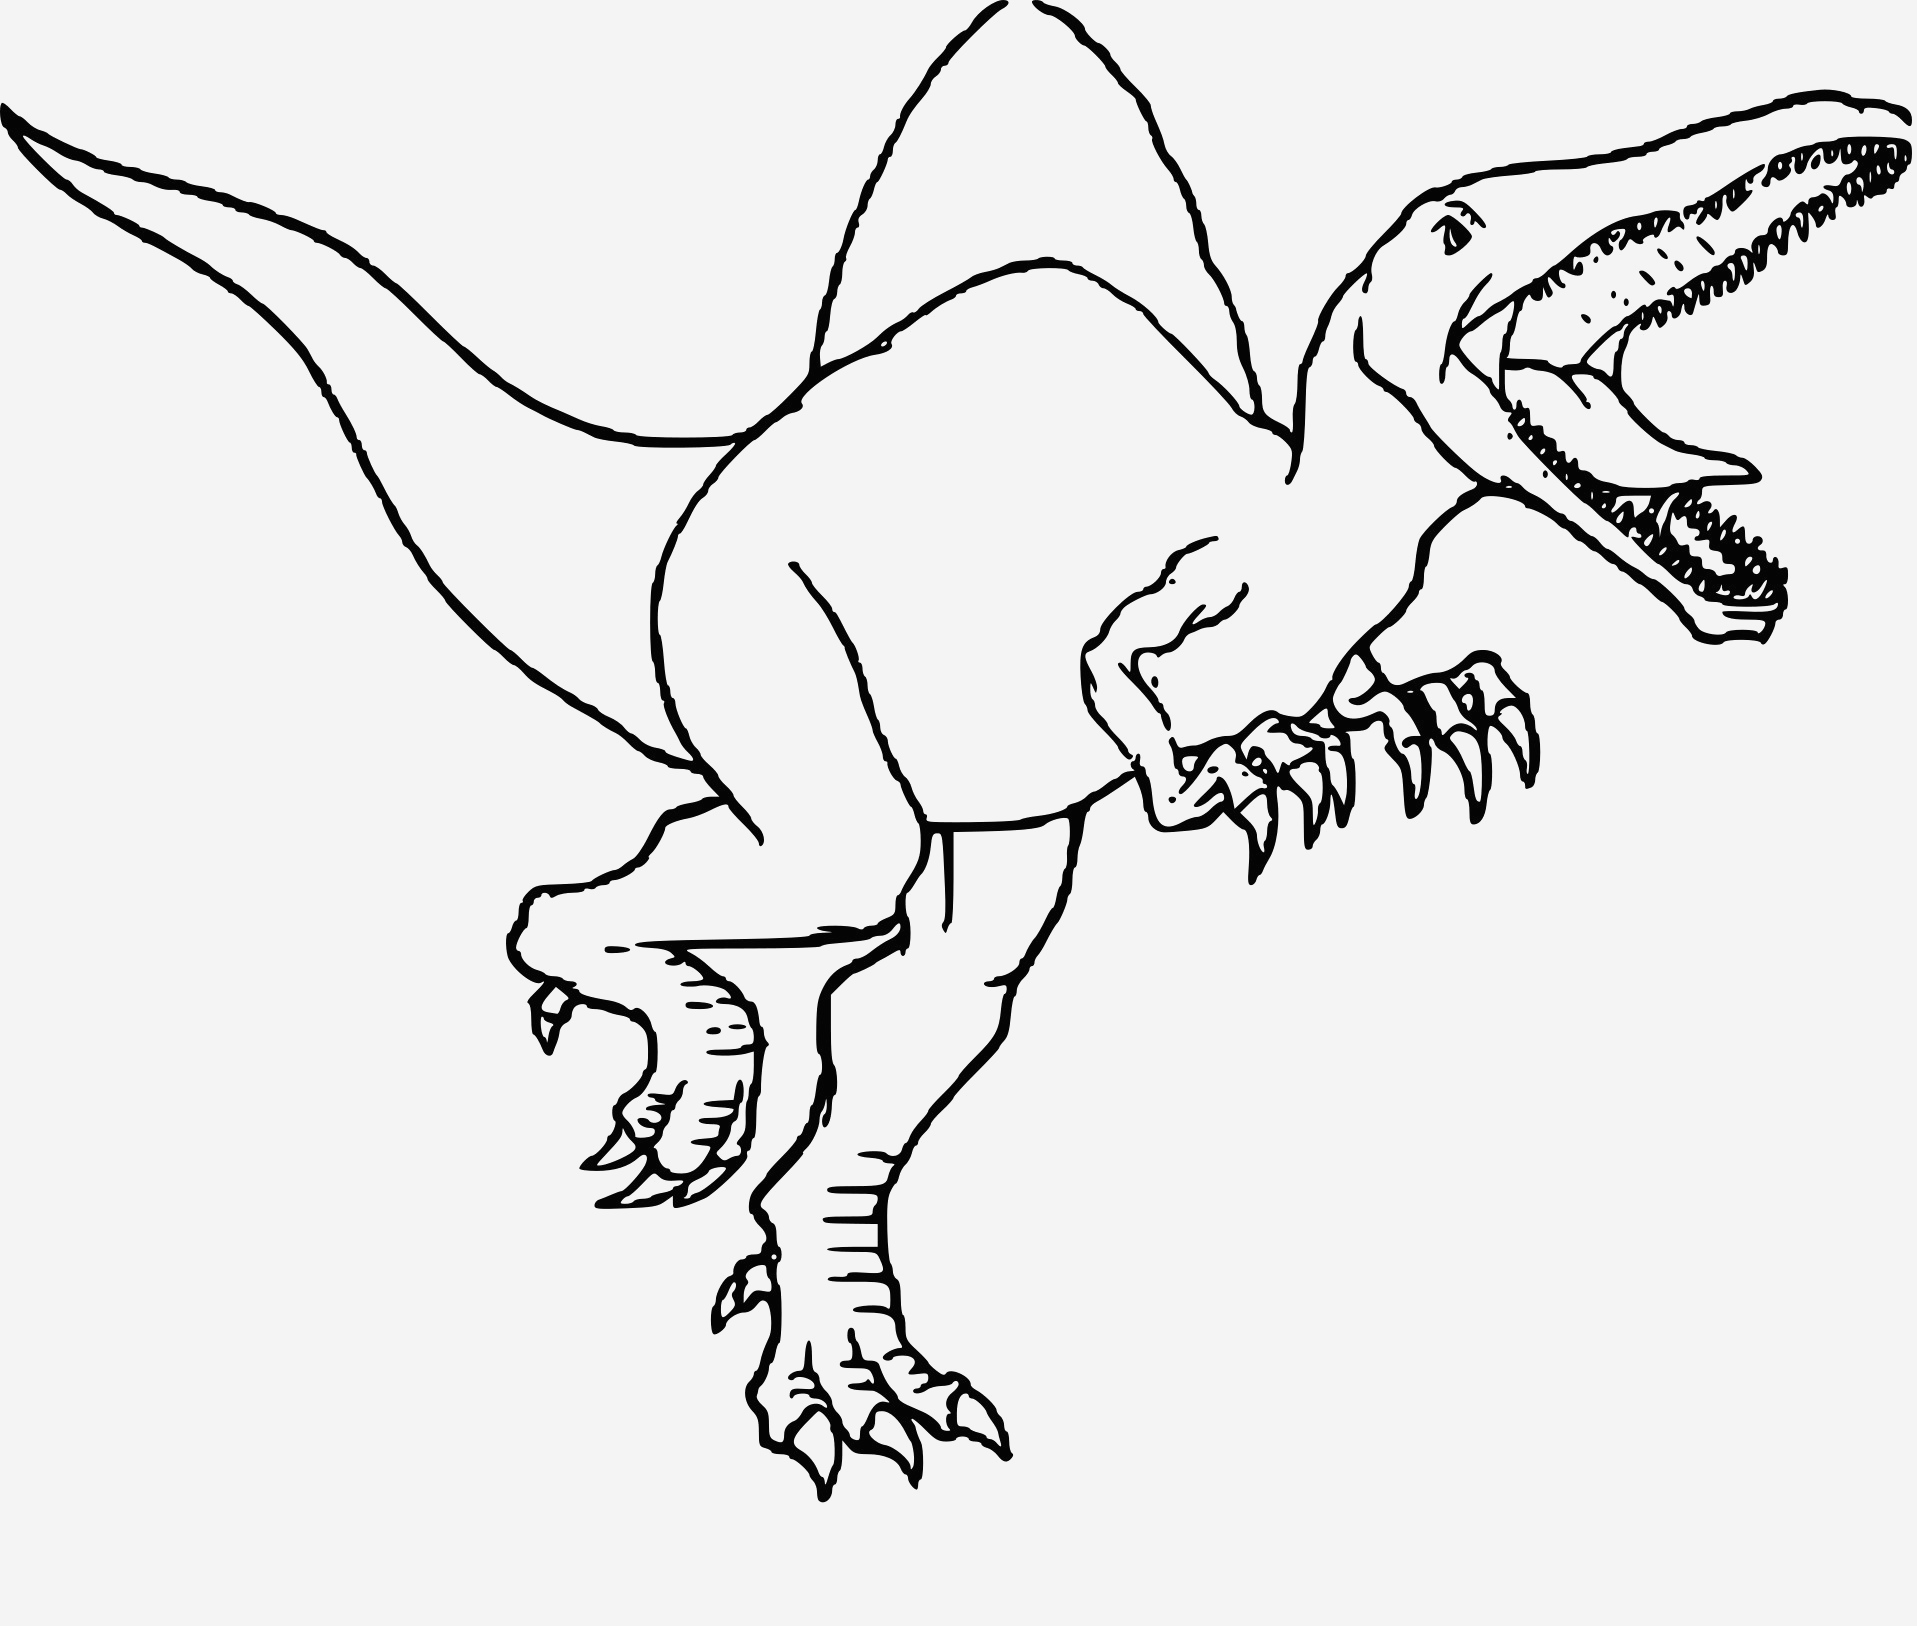 Coloriage Dinosaure Raptor Awesome Coloriage Dinosaure Jurassic Park   Imprimer Sur Coloriages Of Coloriage Dinosaure Raptor